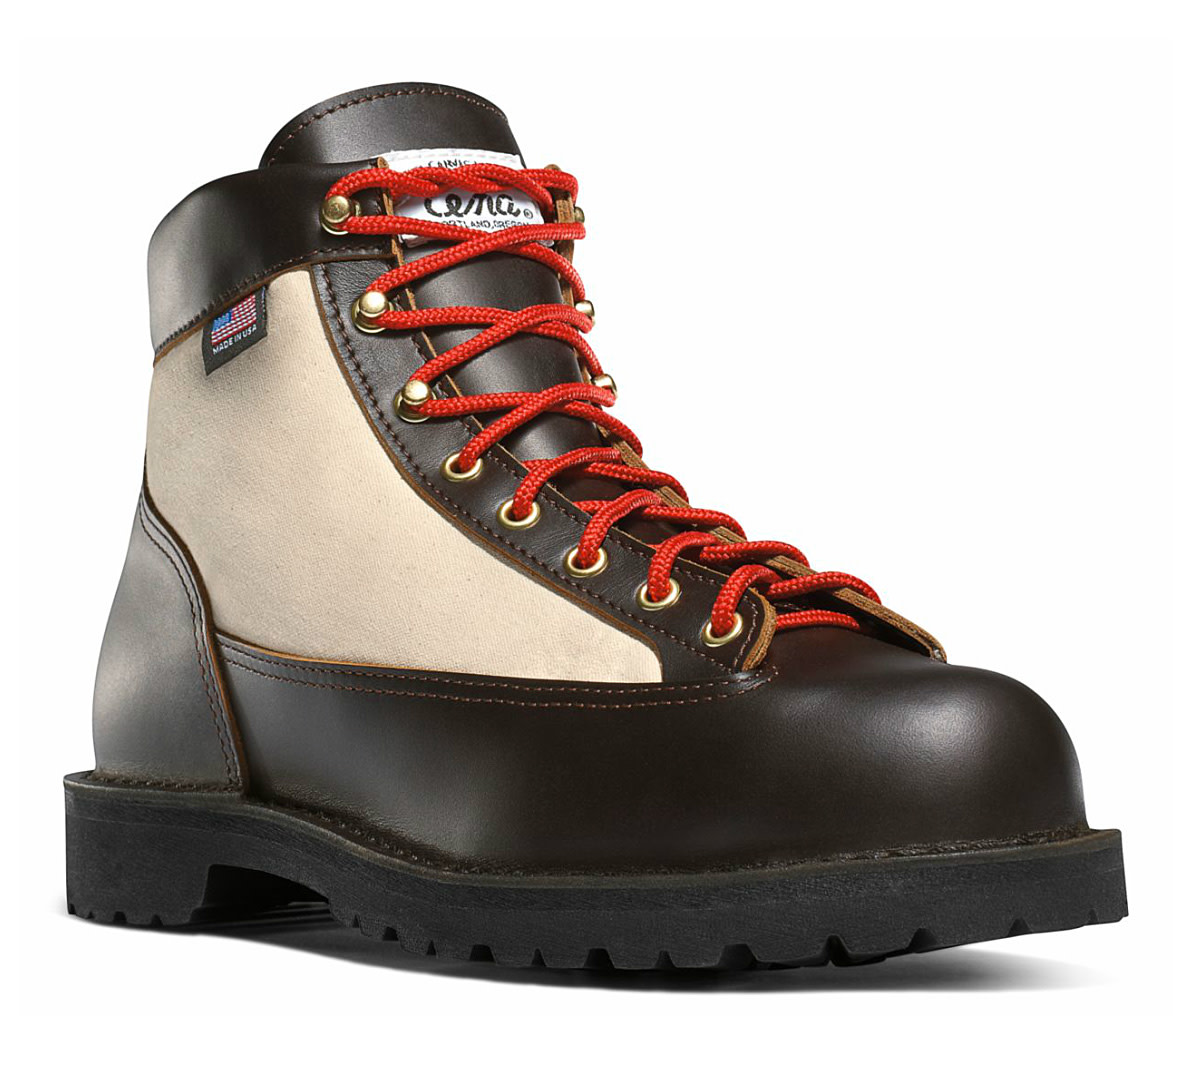 beckel-canvas-products-x-danner-light-beckel-boot-collection-20